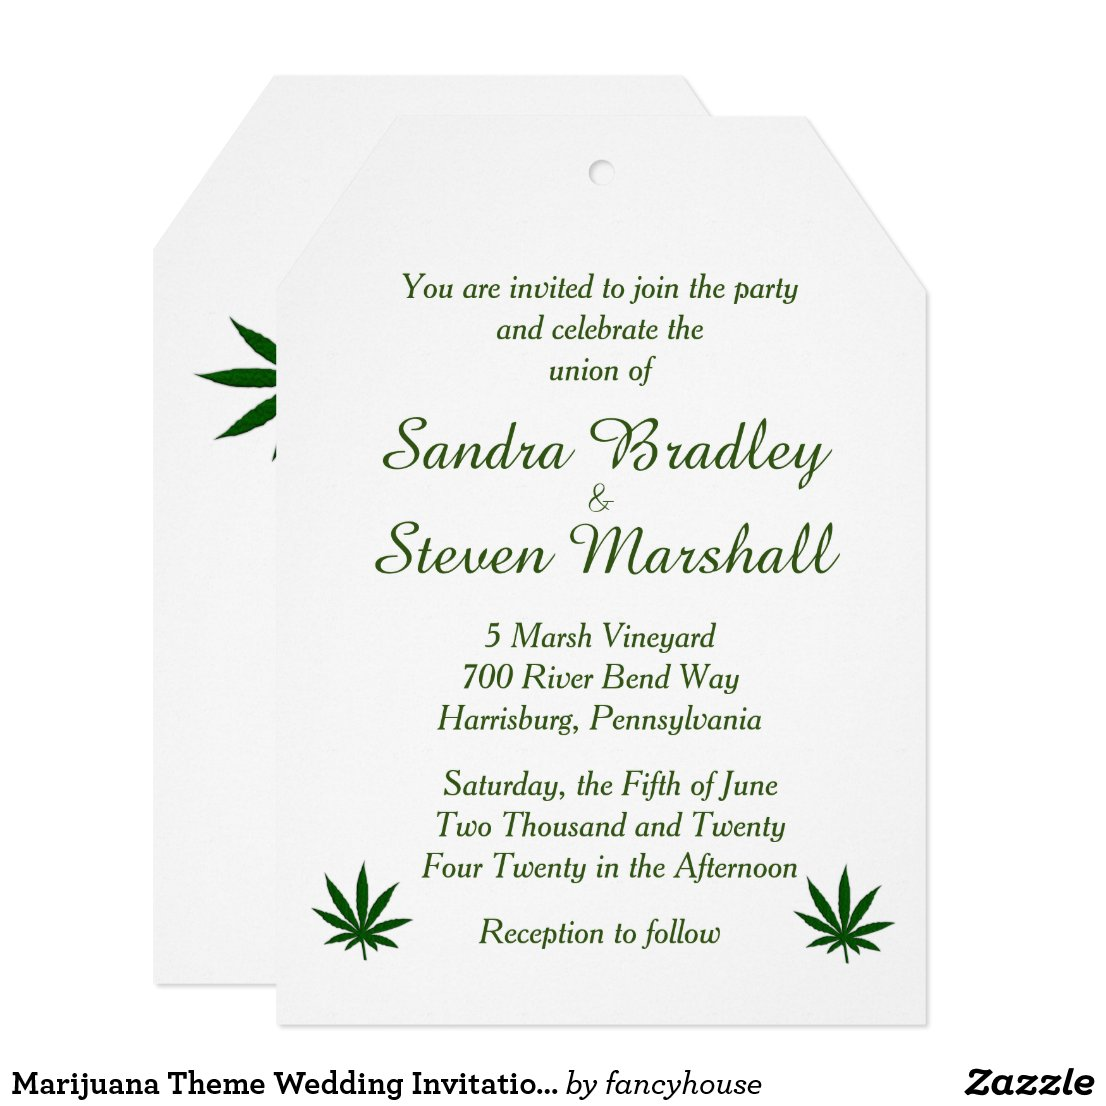 Marijuana Theme Wedding Invitation 5